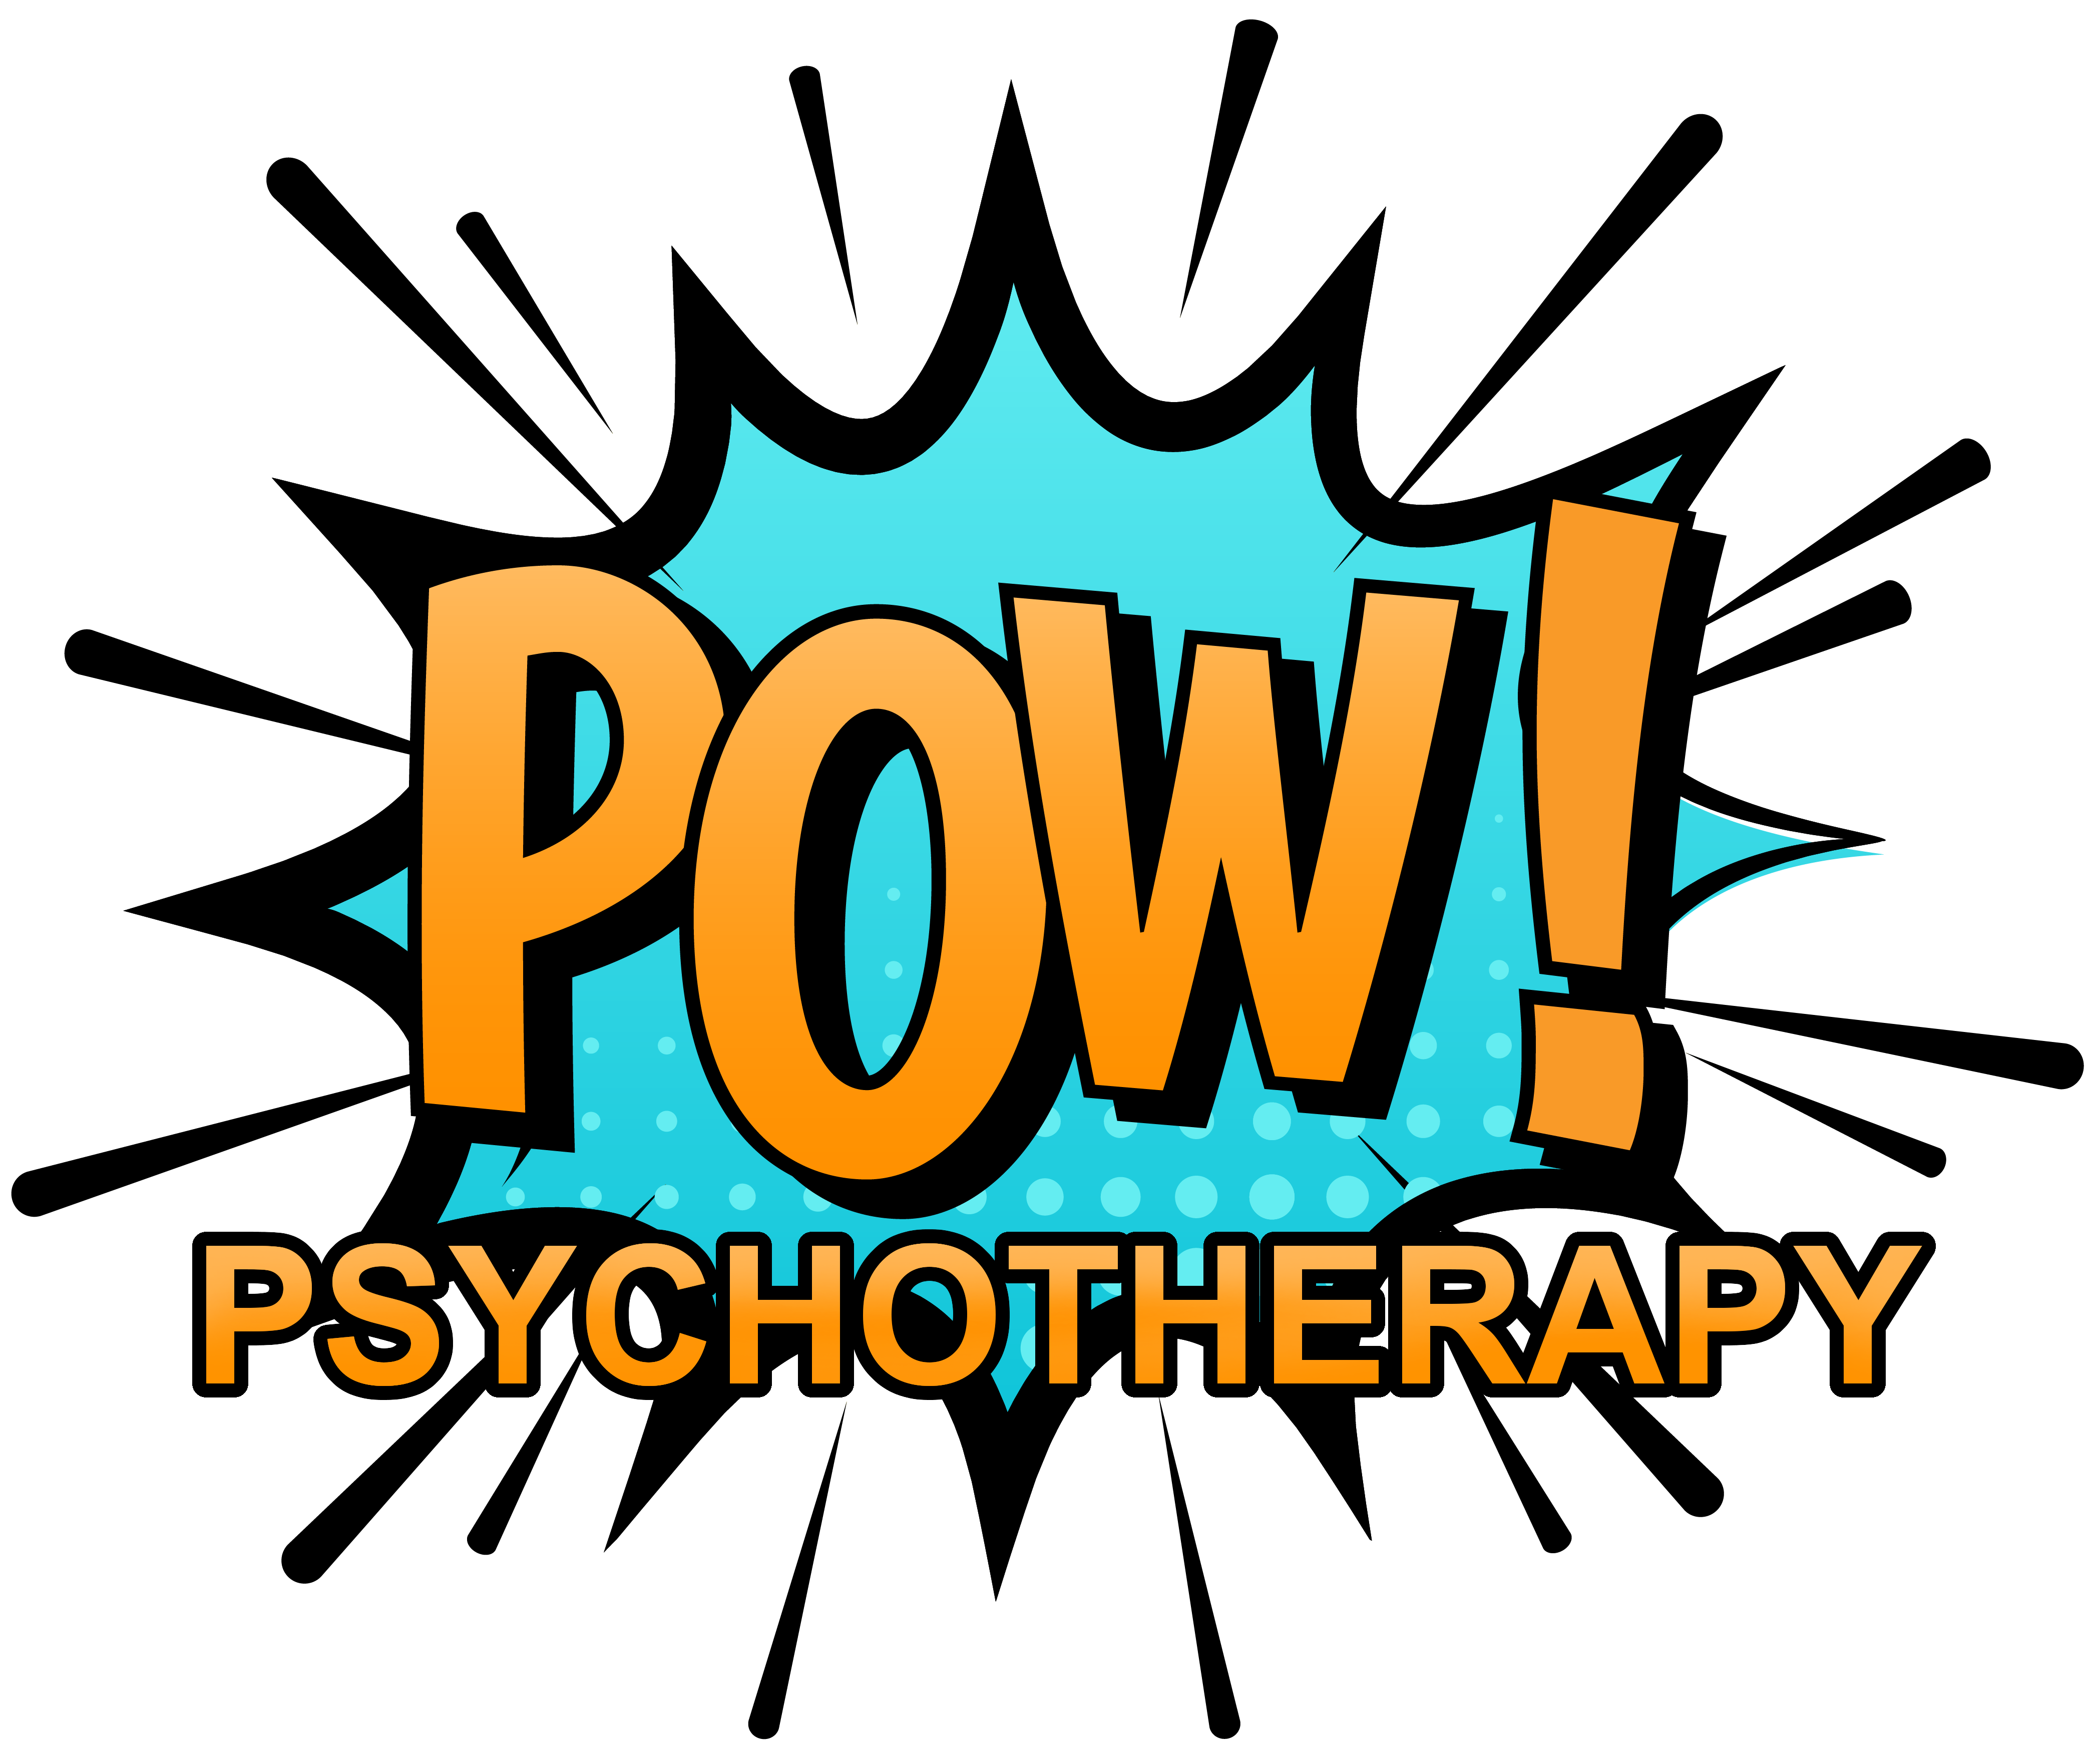 POW! Psychotherapy